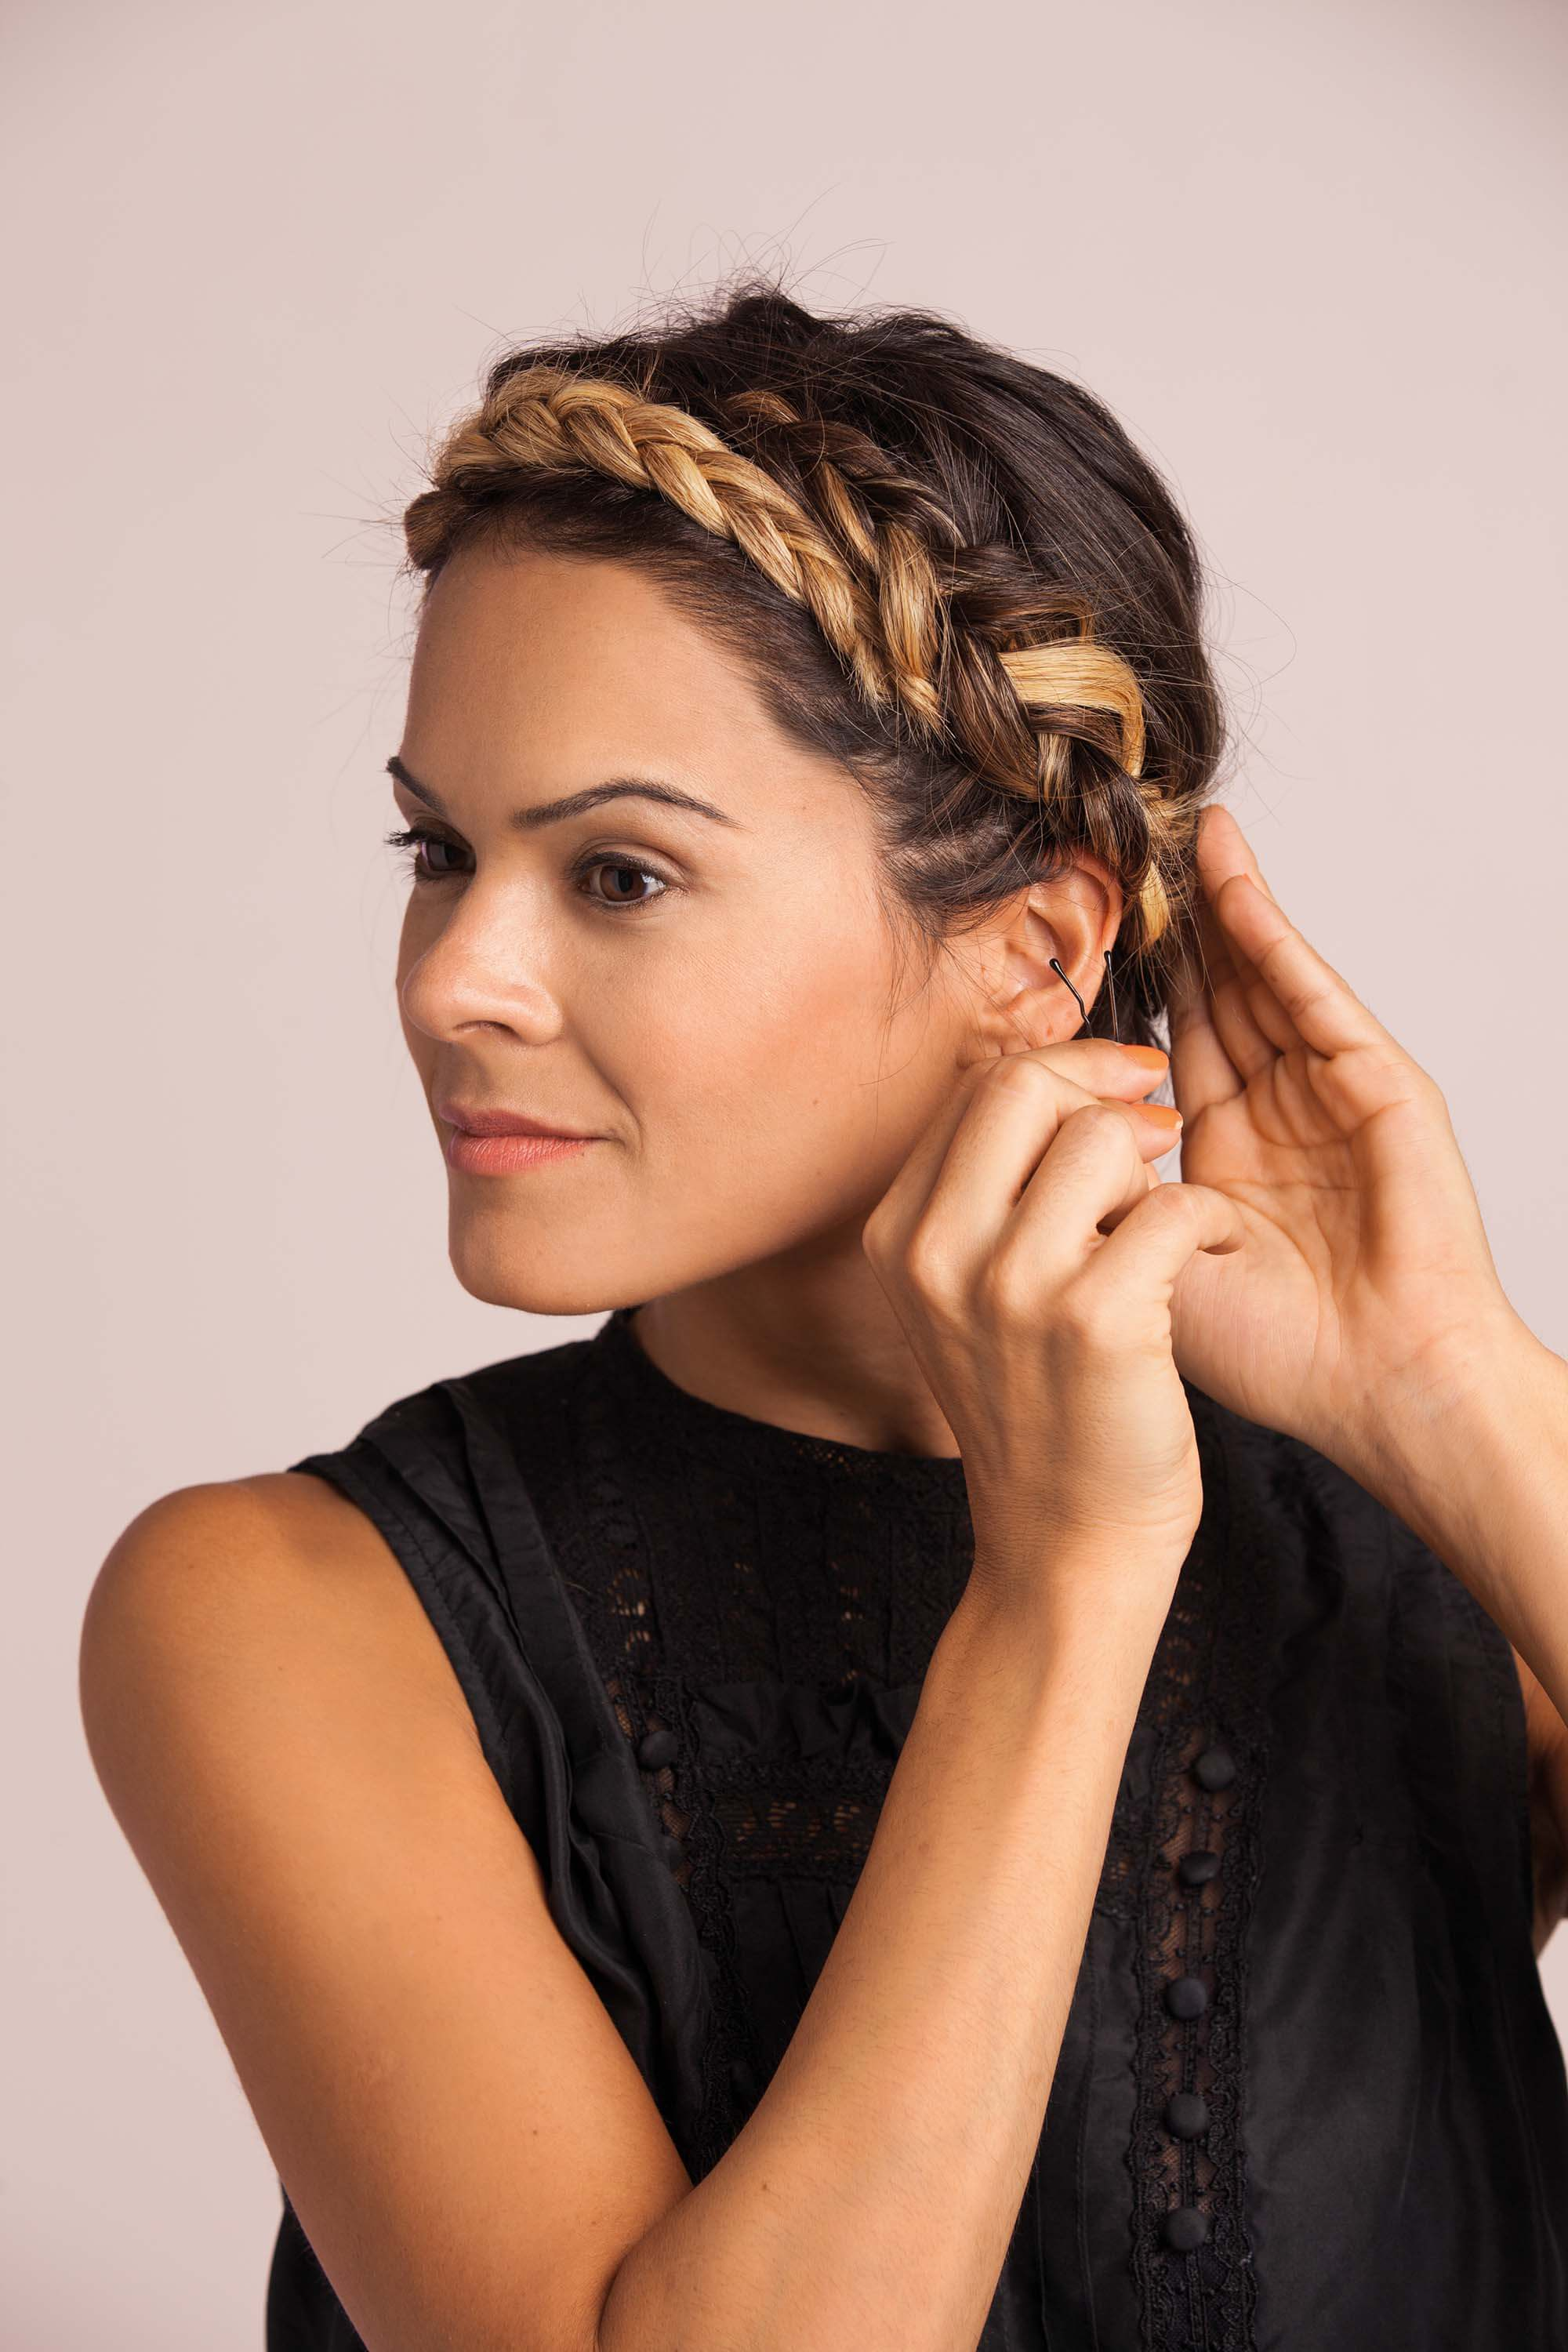 How To Do Halo Braid: Blonde Woman Pinning Her Halo Braid How To Master A